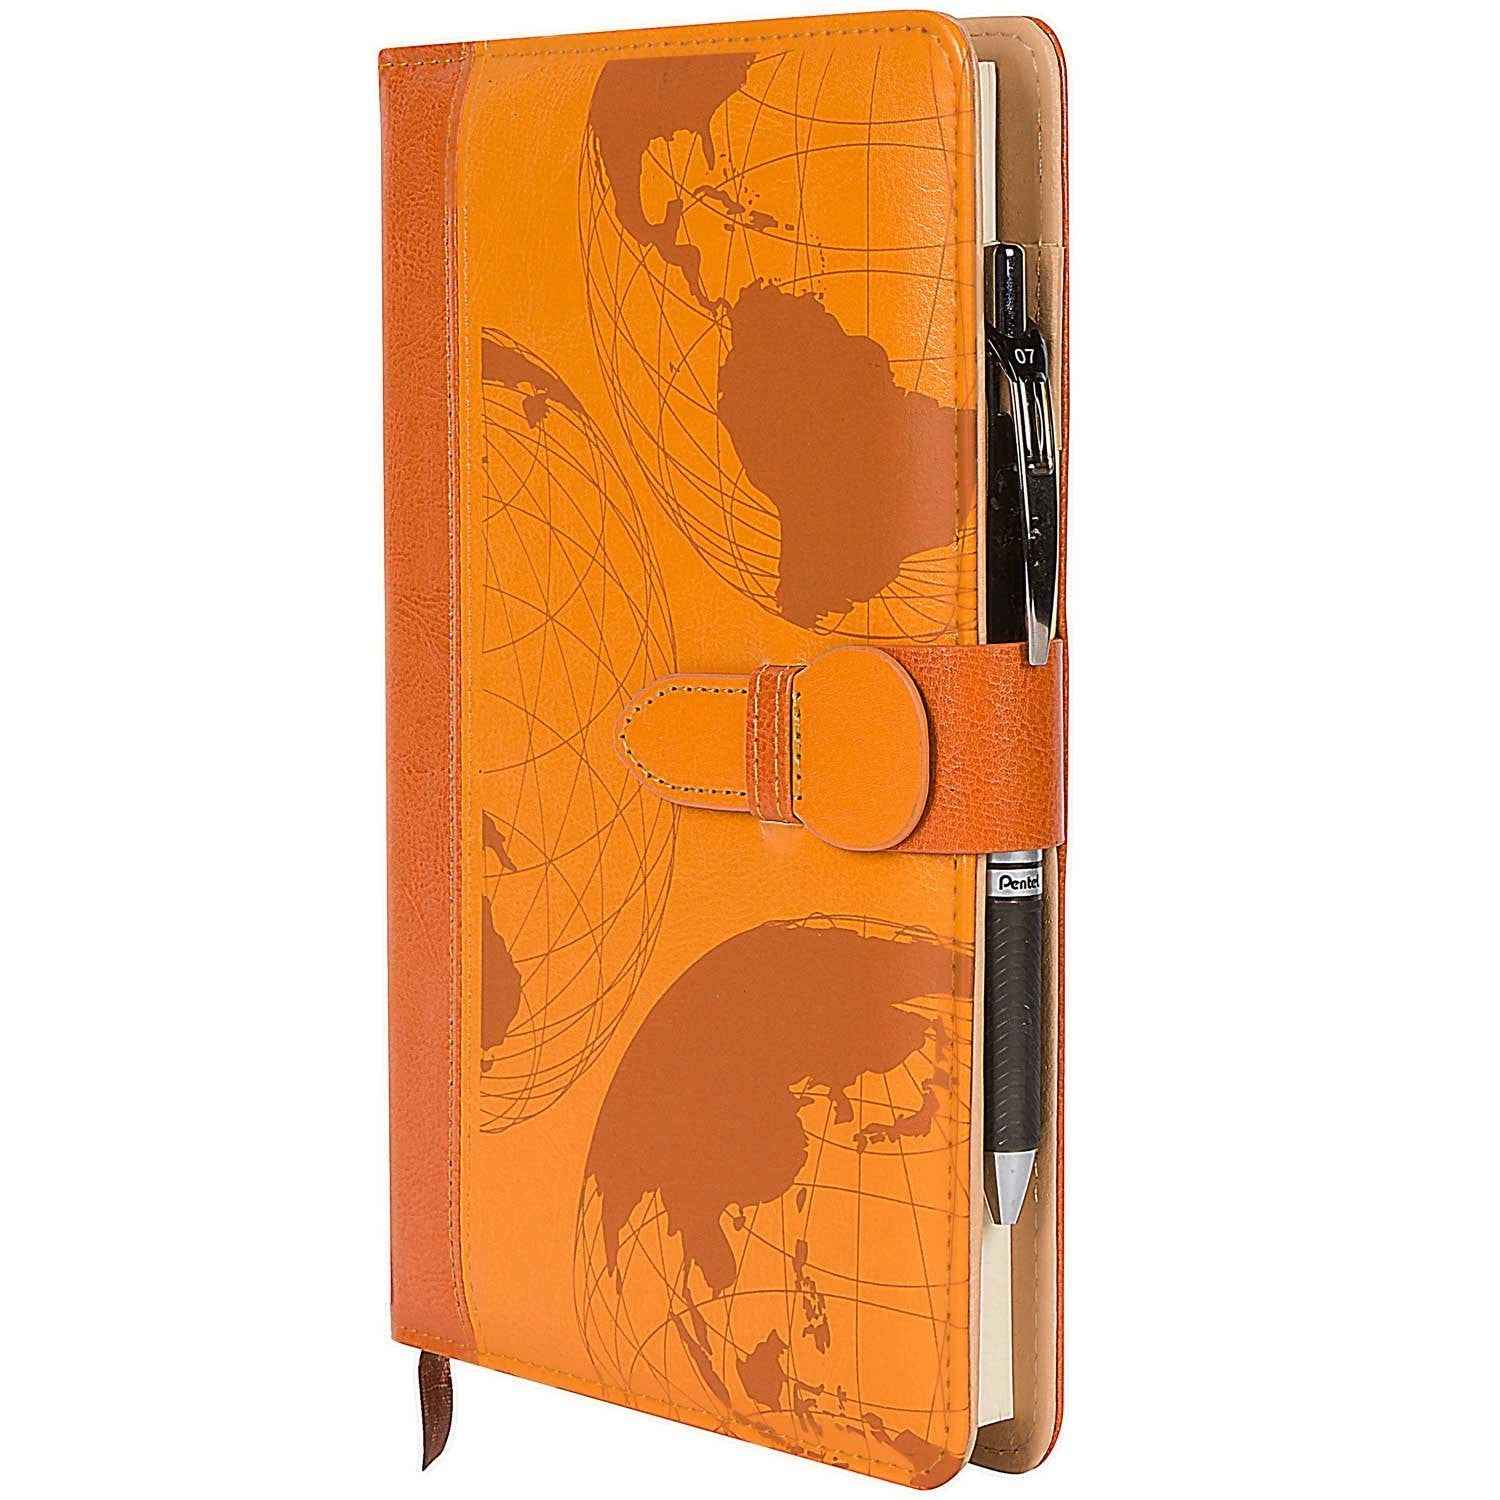 World map refillable writing journal the amazing office world map refillable writing journal gumiabroncs Images